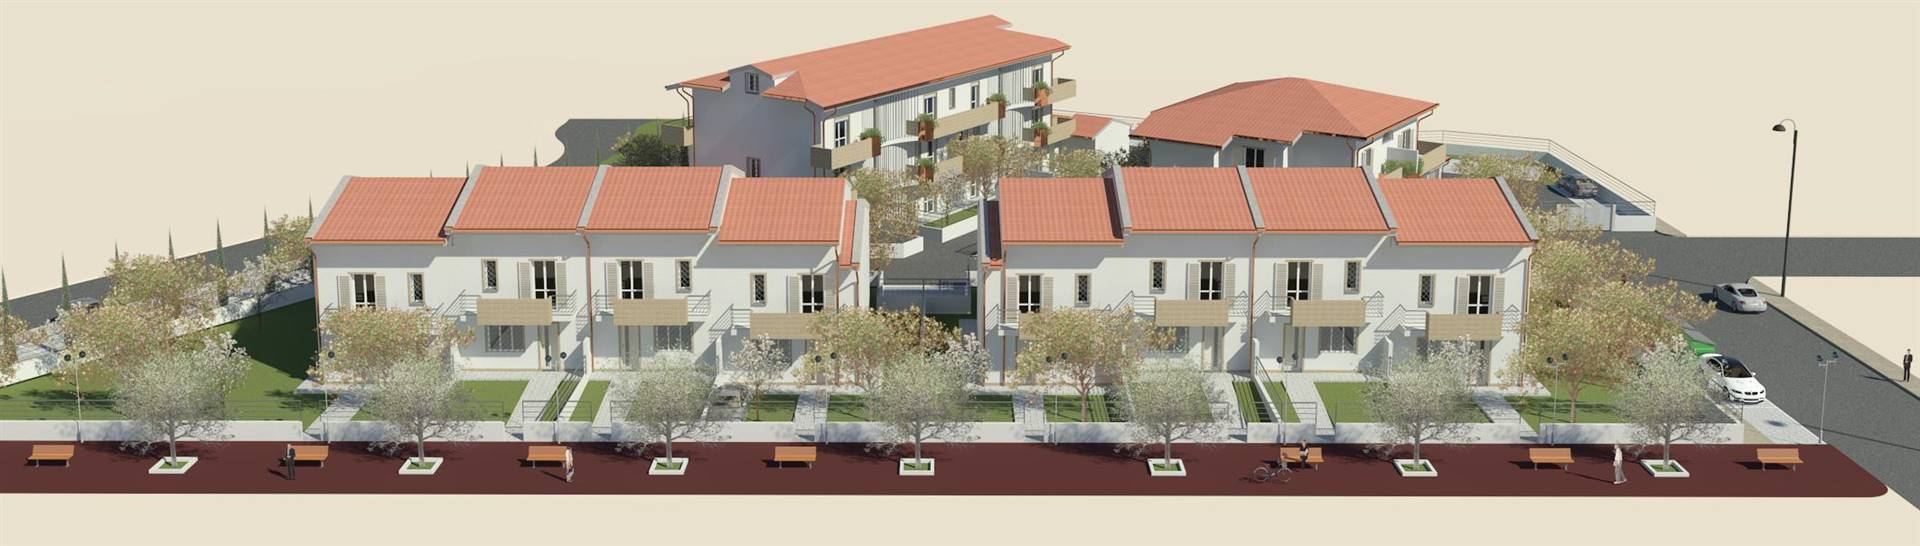 CAPALLE, CAMPI BISENZIO, terraced house for sale of 187 Sq. mt., New construction, Heating Individual heating system, Energetic class: A+, placed at